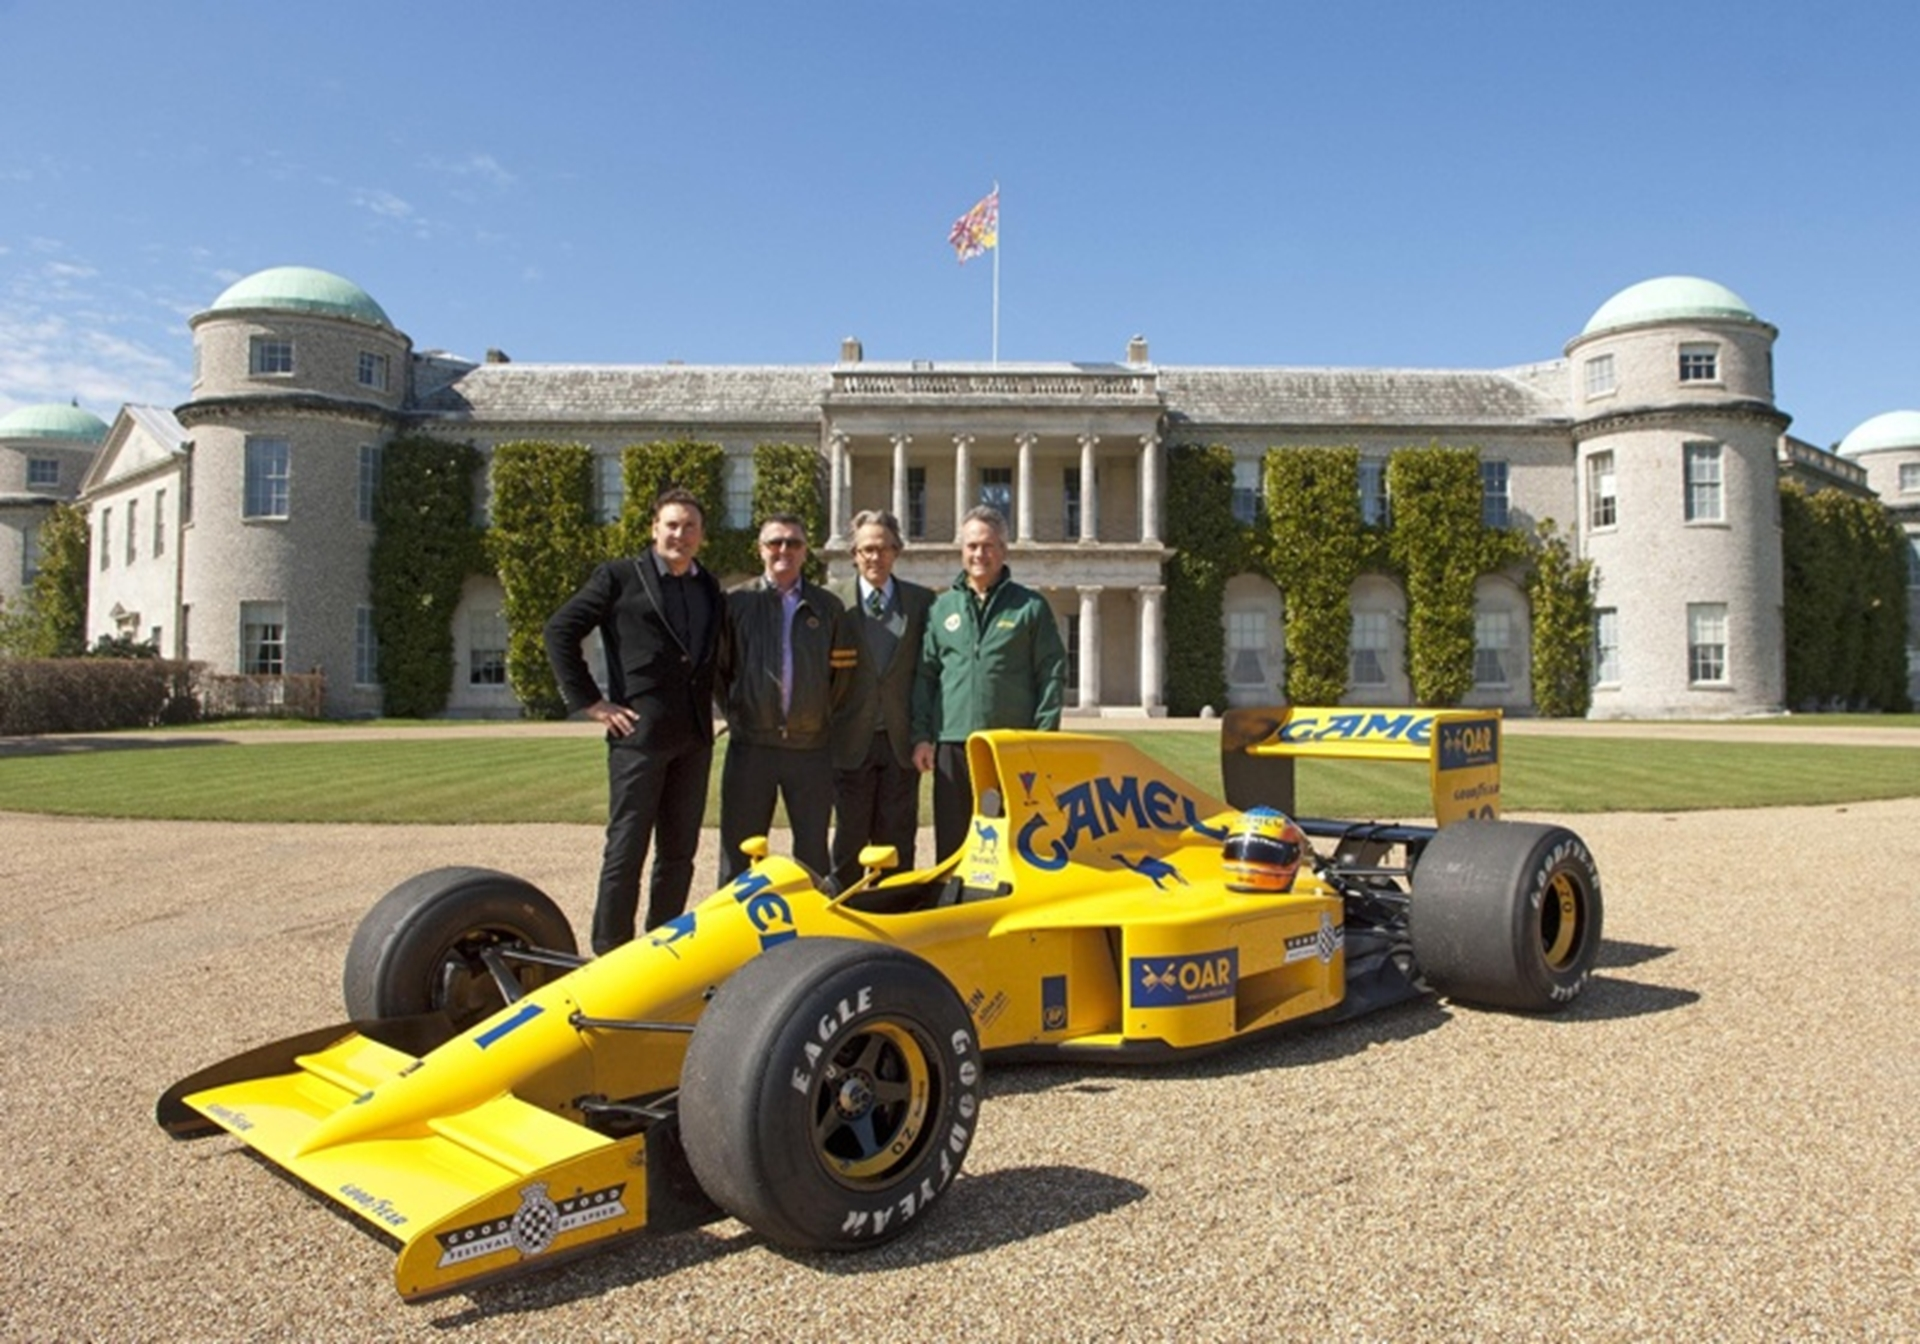 Team Lotus at Goodwood